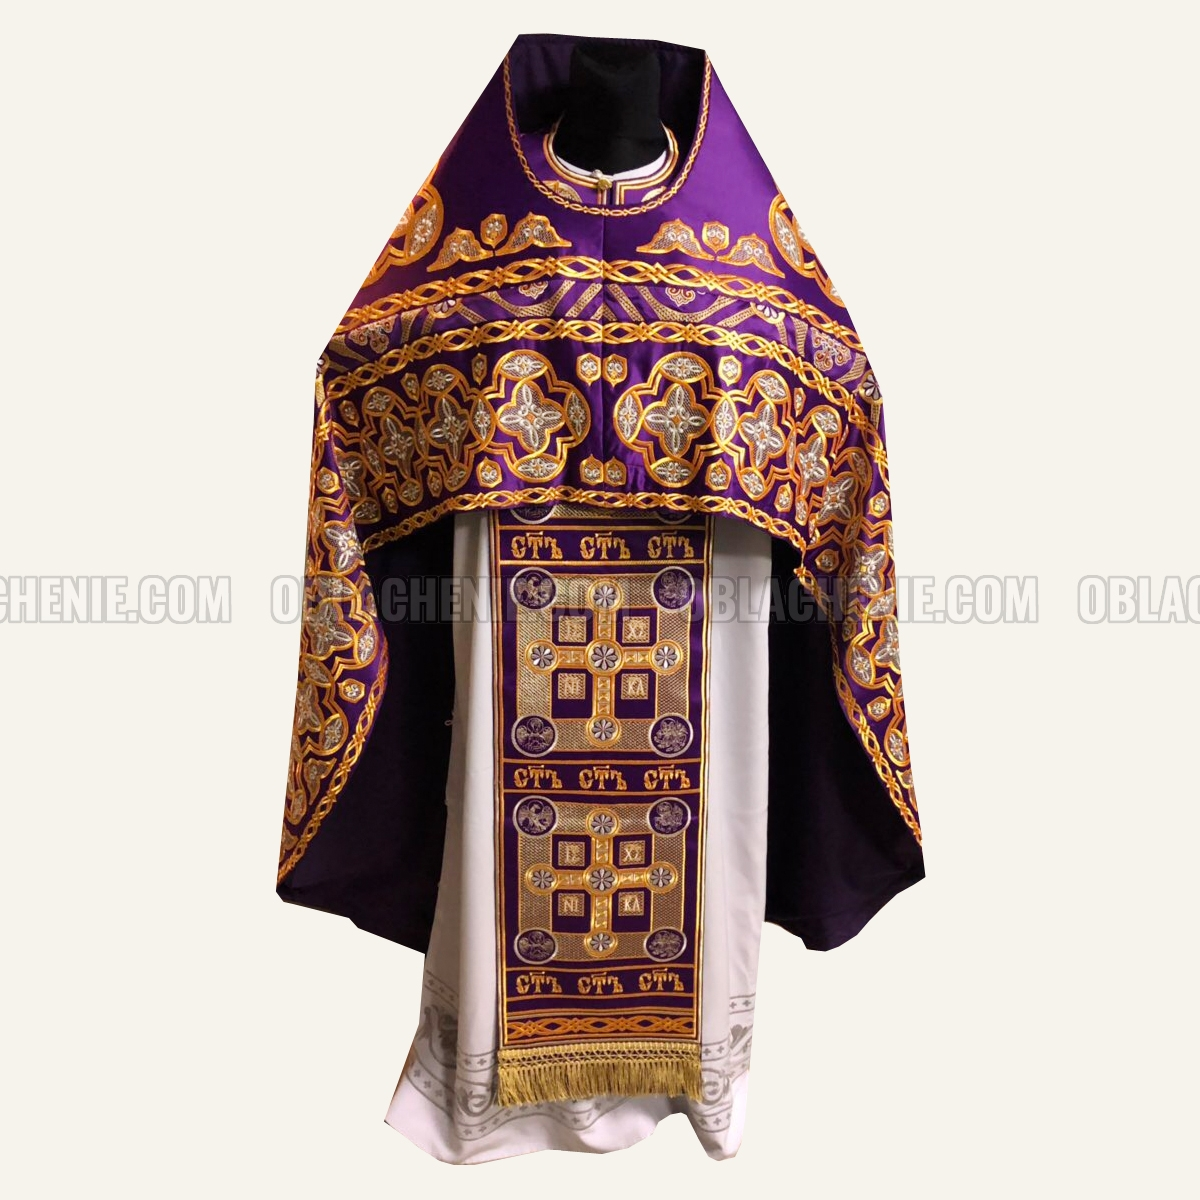 Embroidered priest's vestments 10223